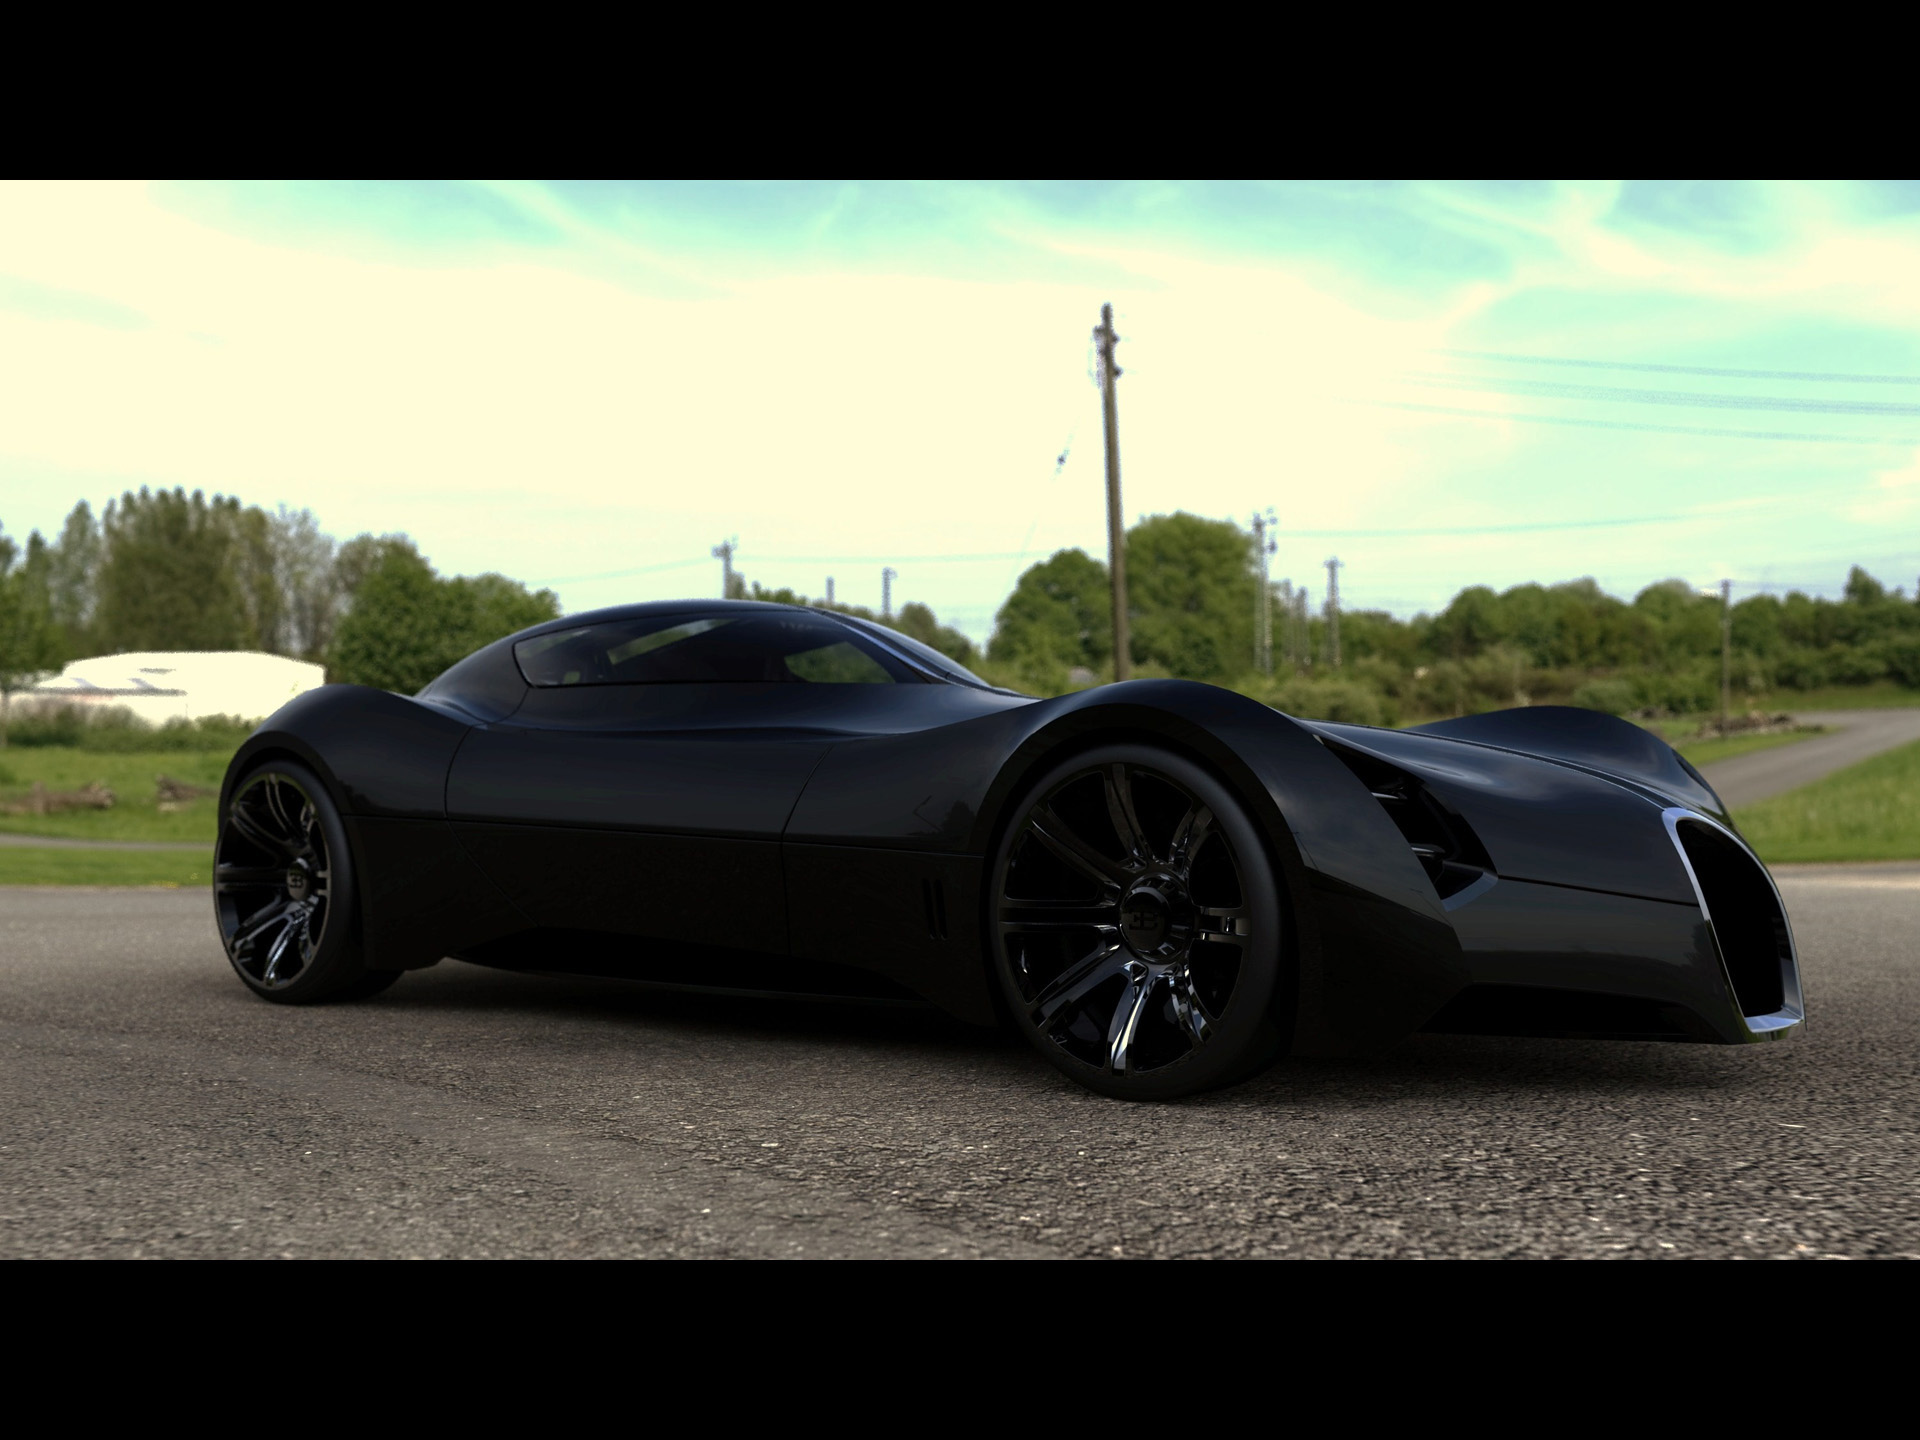 future Bugatti Aerolithe Concept Design by Douglas Hogg Front And Side Free Download Image